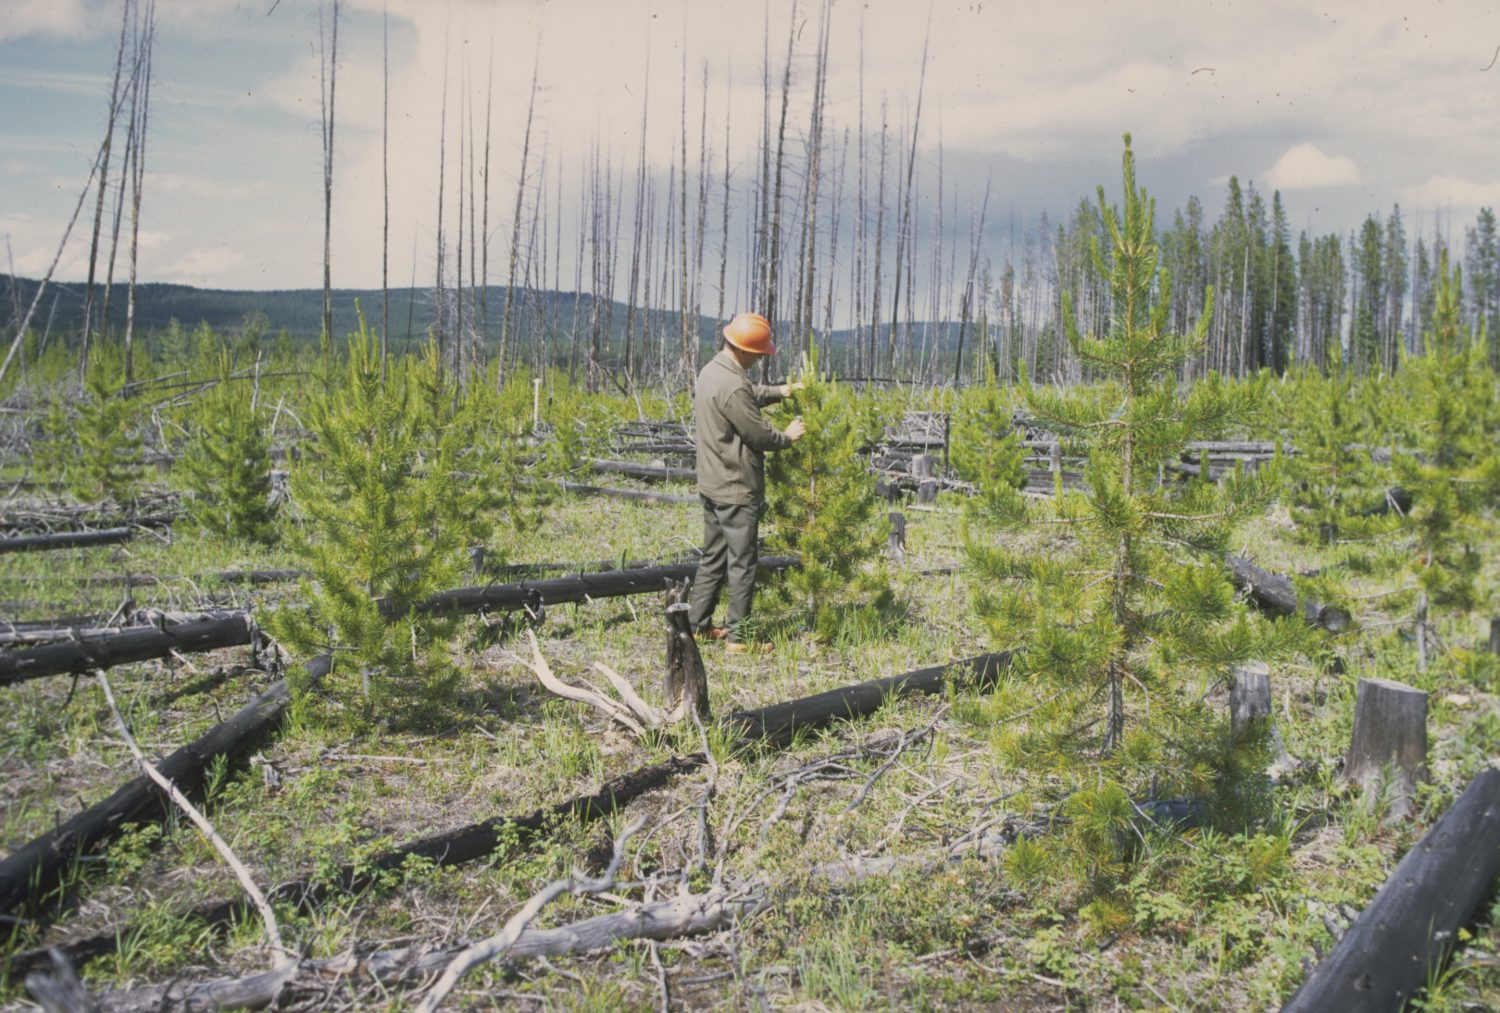 A forester measuring regrowth in a cutblock